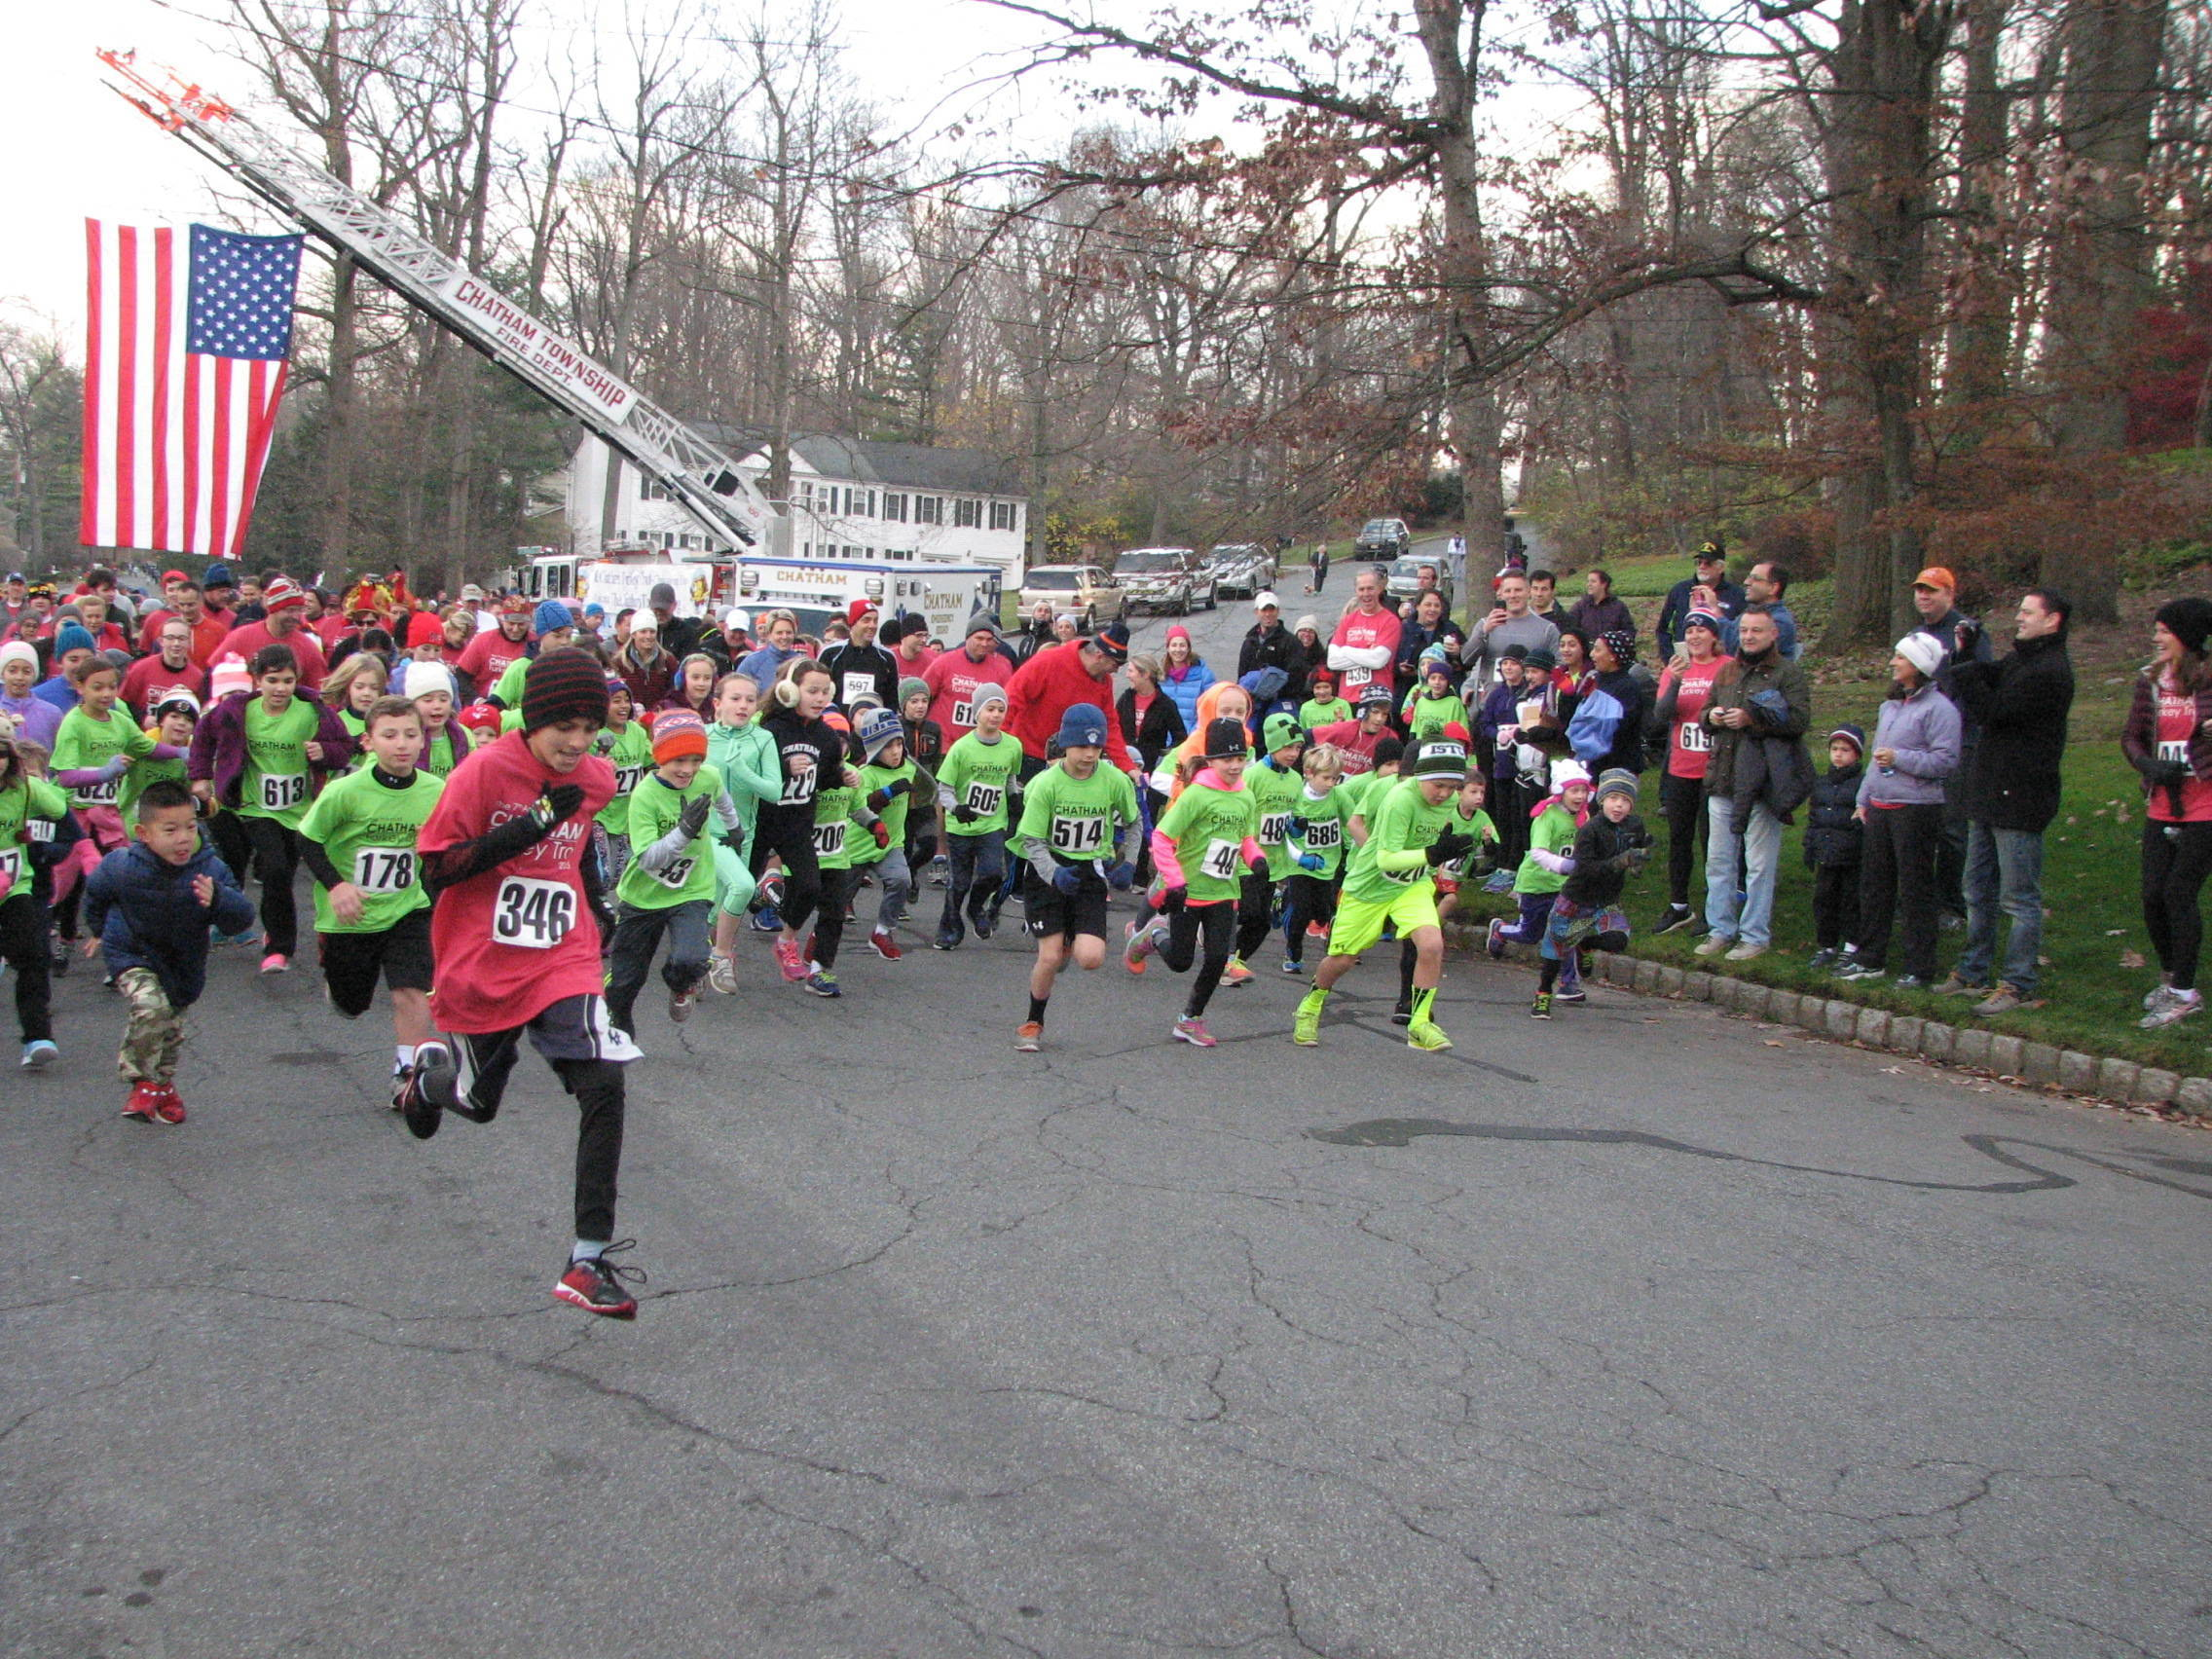 More than 3300 participate in chilly Briargate Turkey Trot Thursday